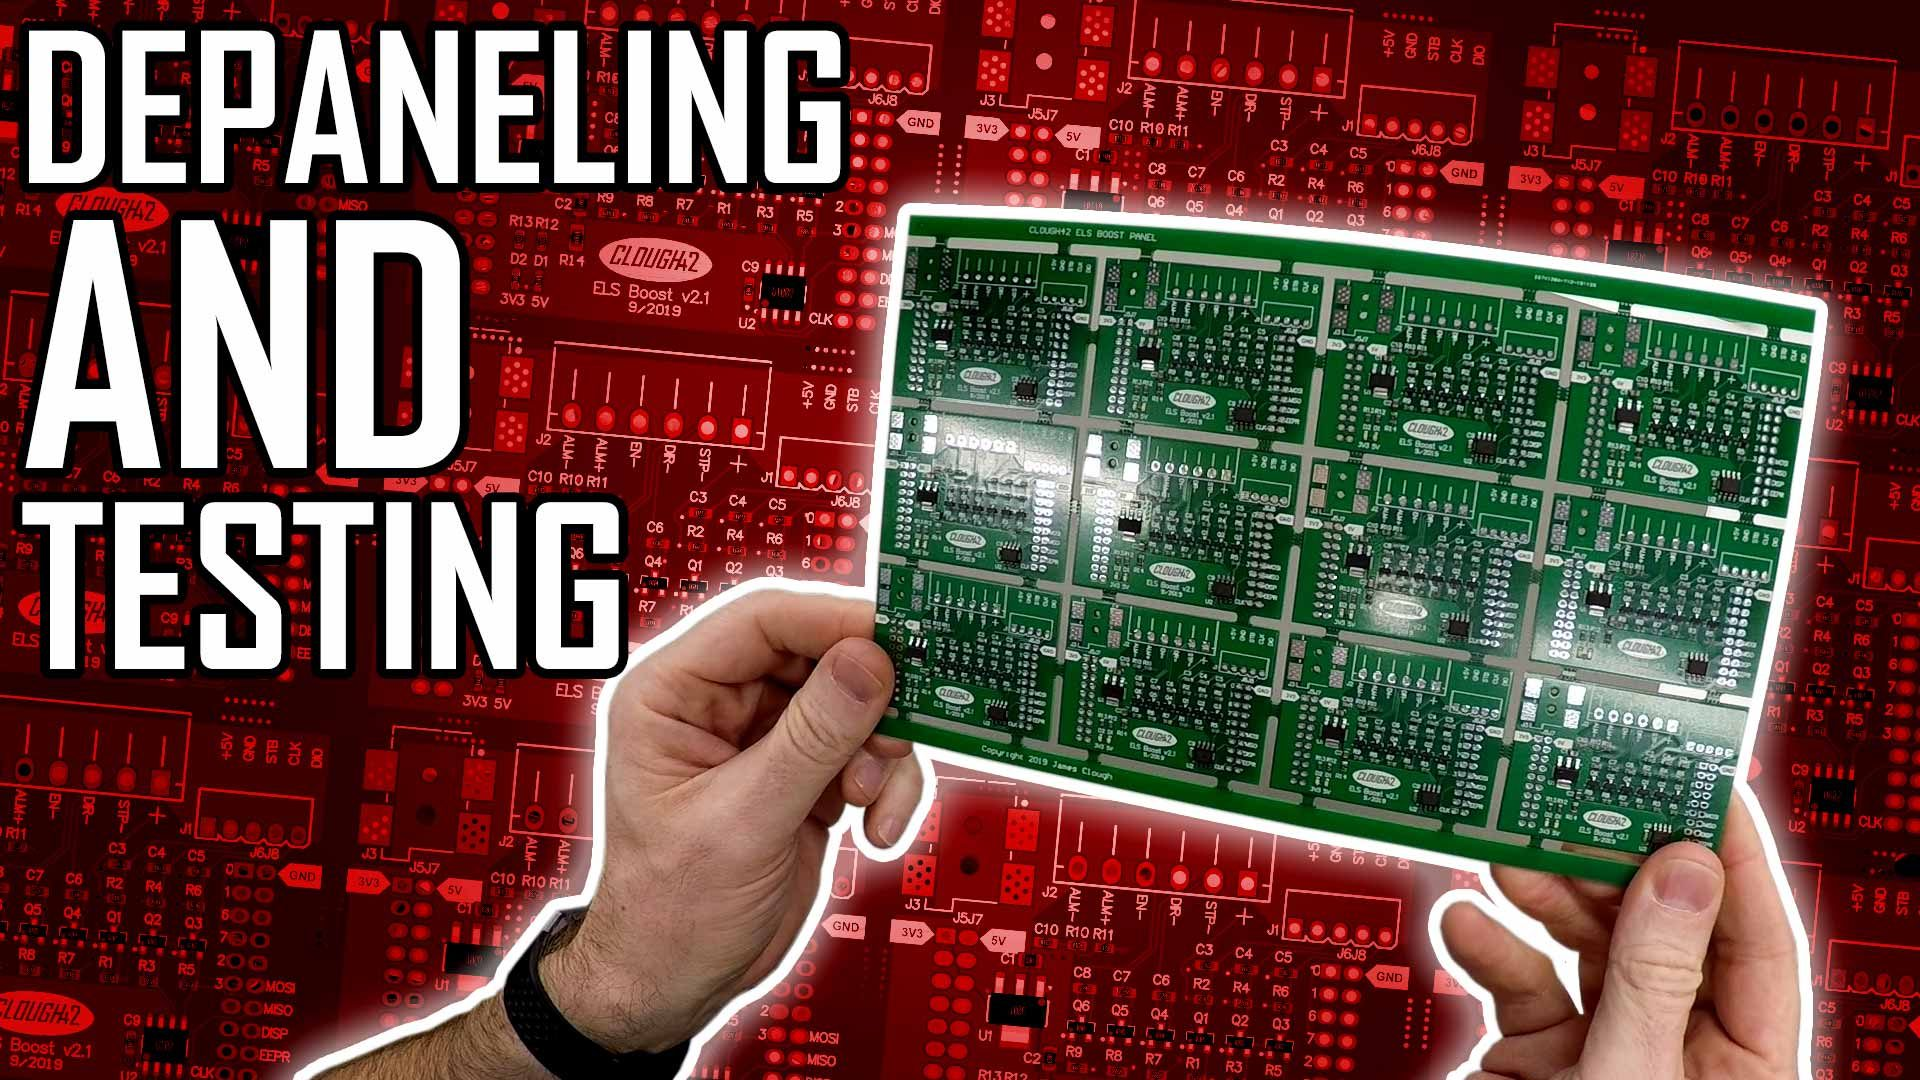 Panelizing PCBs Part 2: Depaneling and Testing